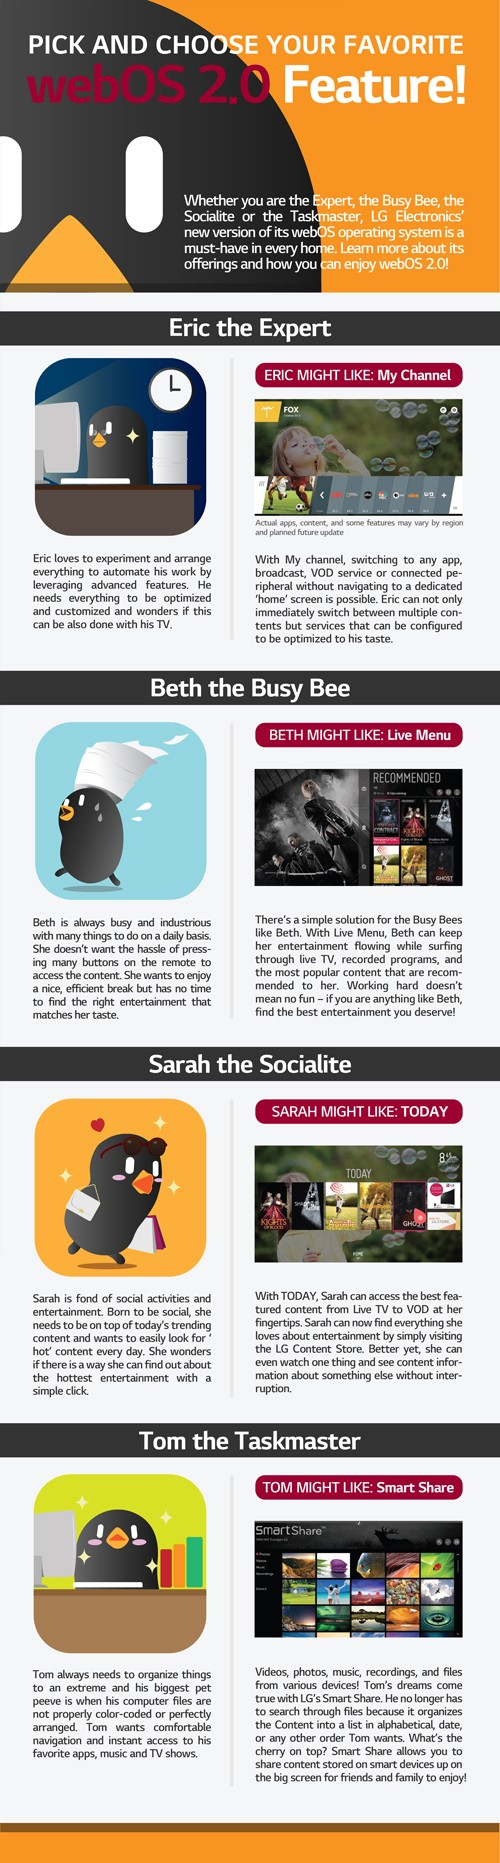 Featuring LG's Bean Bird characters, this infographic shows four different needs for enhanced smart TV functions are satisfied perfectly by My Channel, Live Menu, Today and Smart Share of the webOS 2.0 smart TV platform.